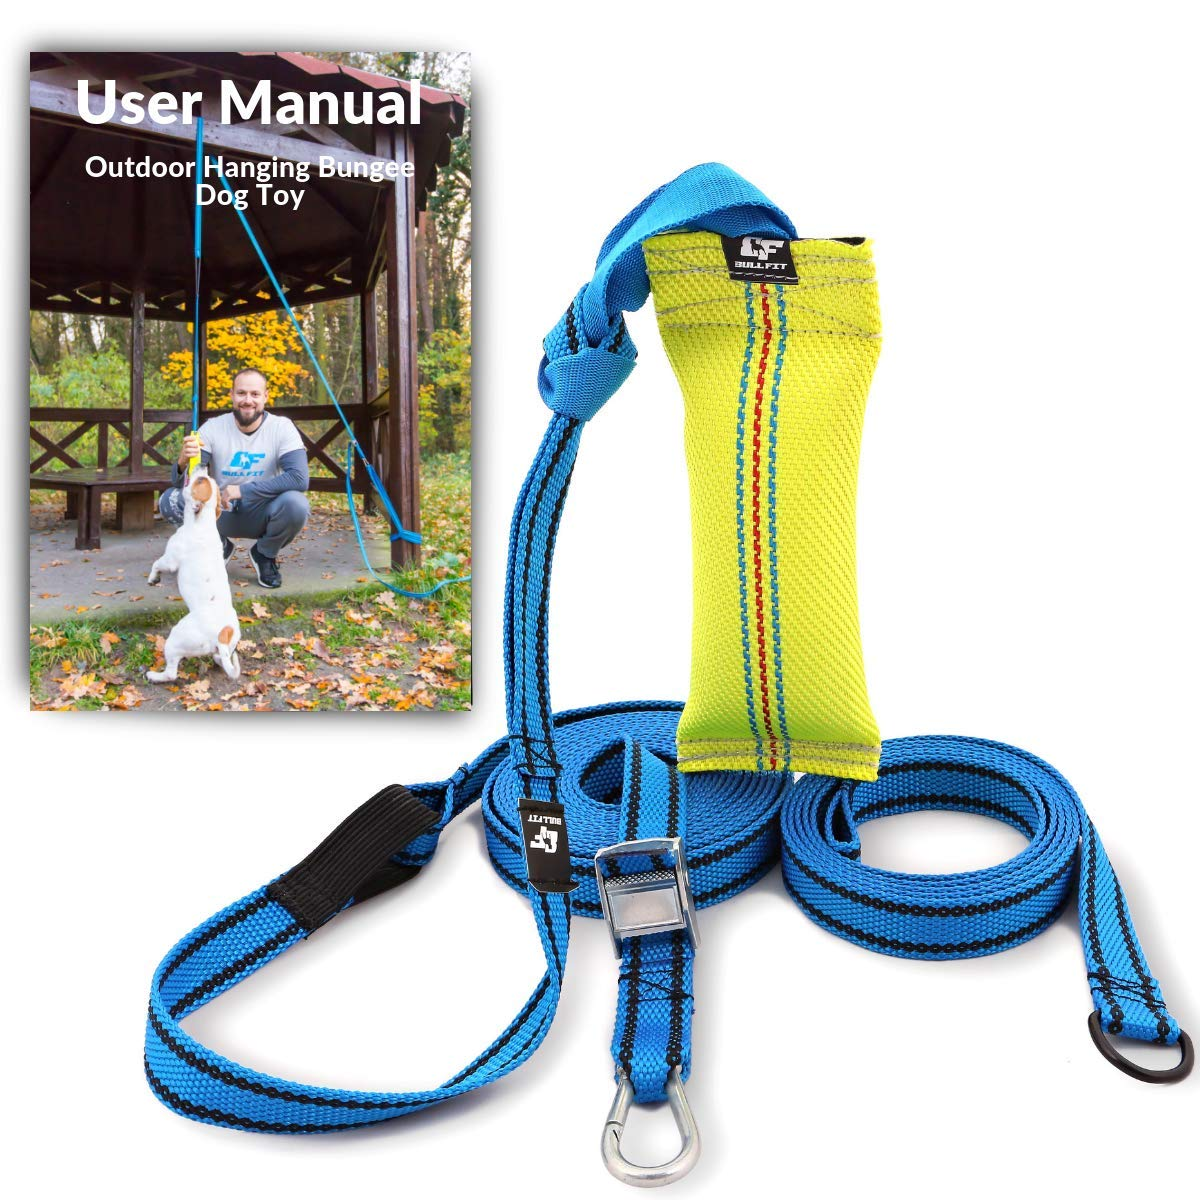 Bull Fit New Outdoor Hanging Bungee Dog Toy - Spring Pole for Pitbull & Medium to Large Dogs - Extra Safe, Durable, Interactive Tugger & Muscle Builder - $15 Fire Hose Bite Tug of War Toy Included